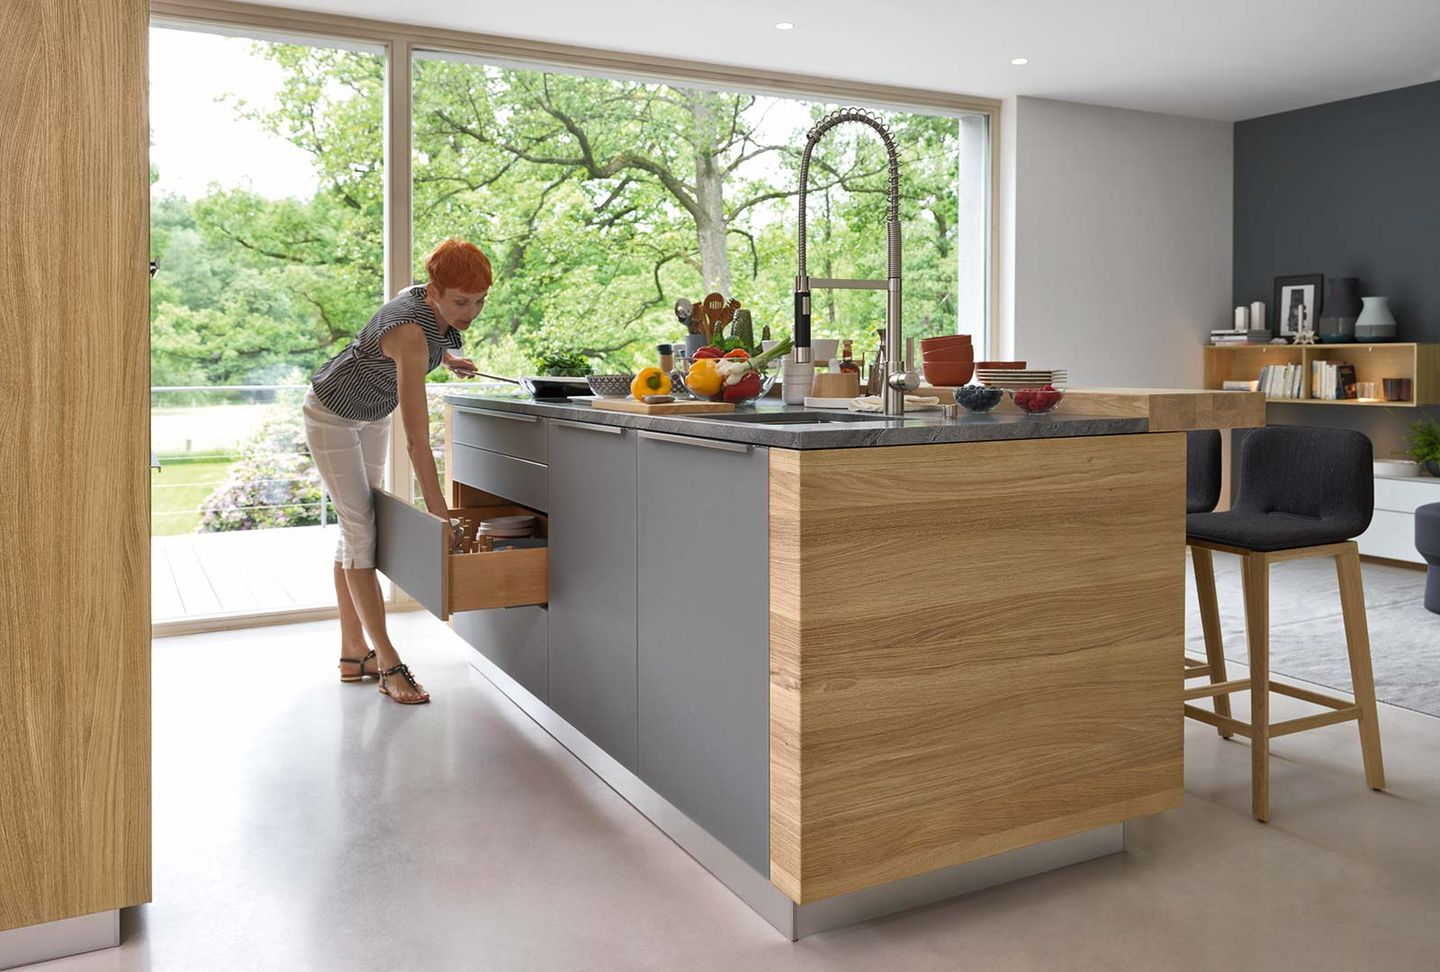 linee kitchen island in wood with ark bar stool